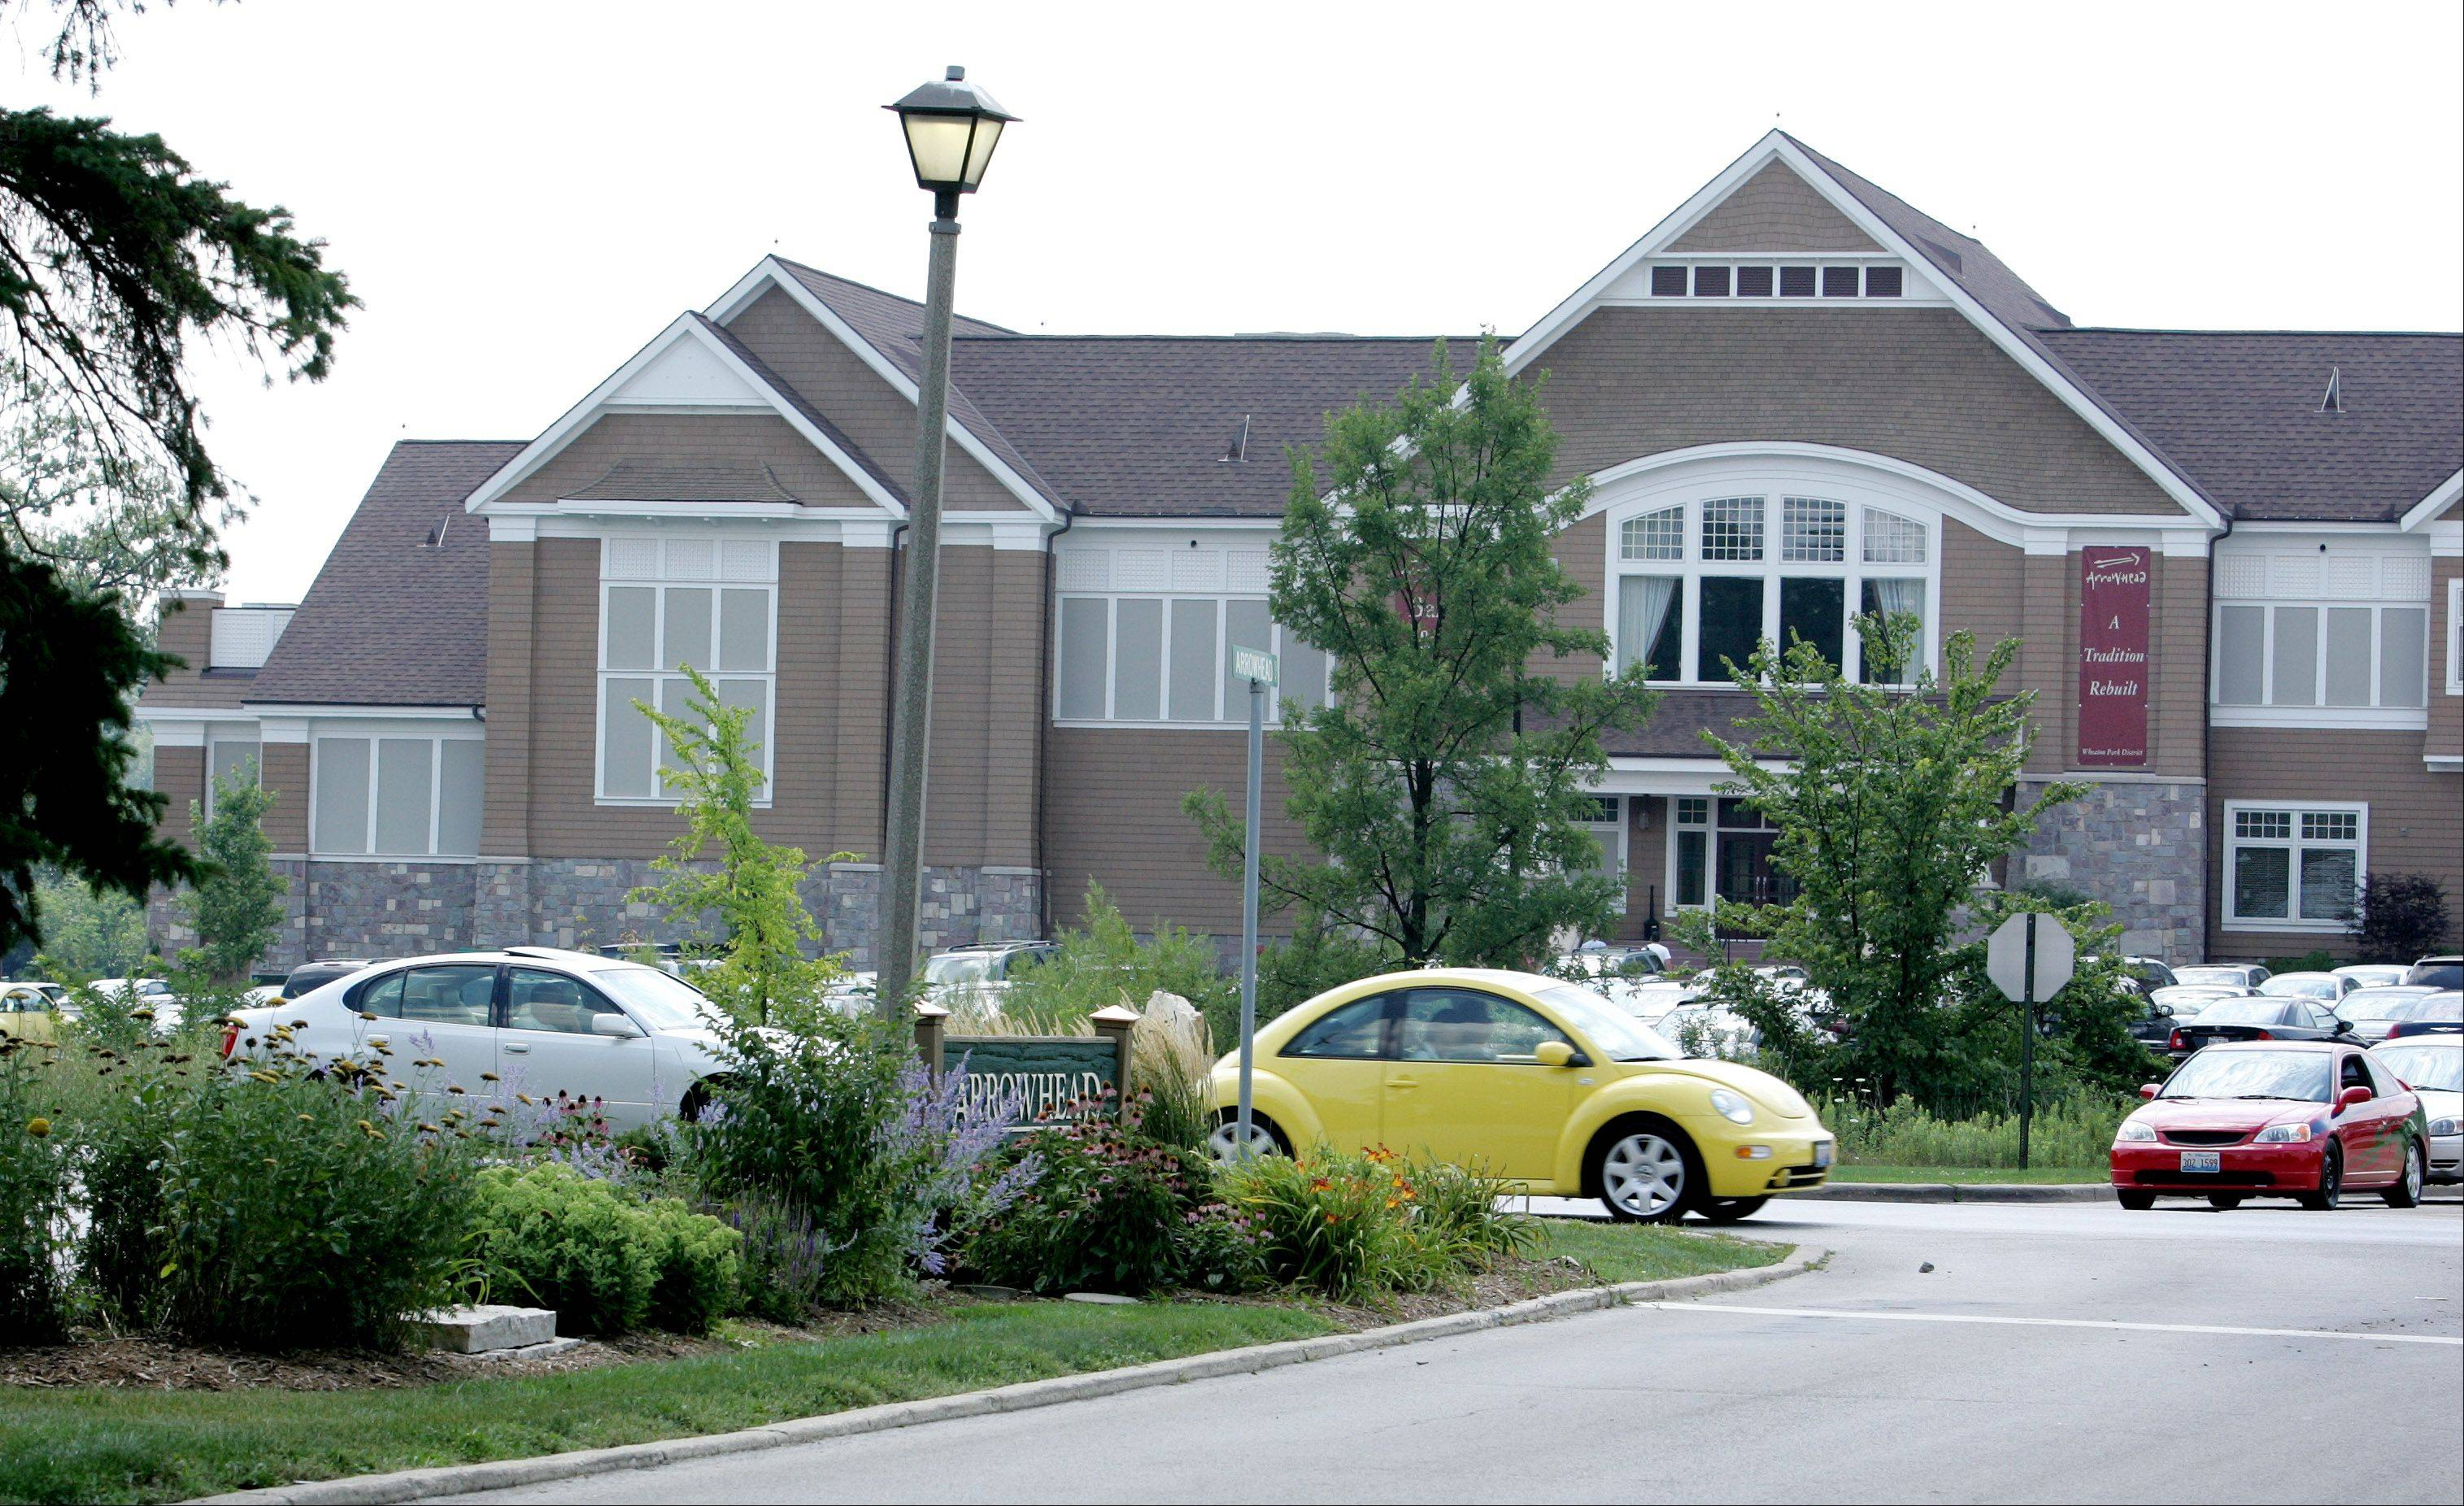 Wheaton Park District commissioners have pulled the plug on further talks about bringing a hotel to Arrowhead Golf Club.